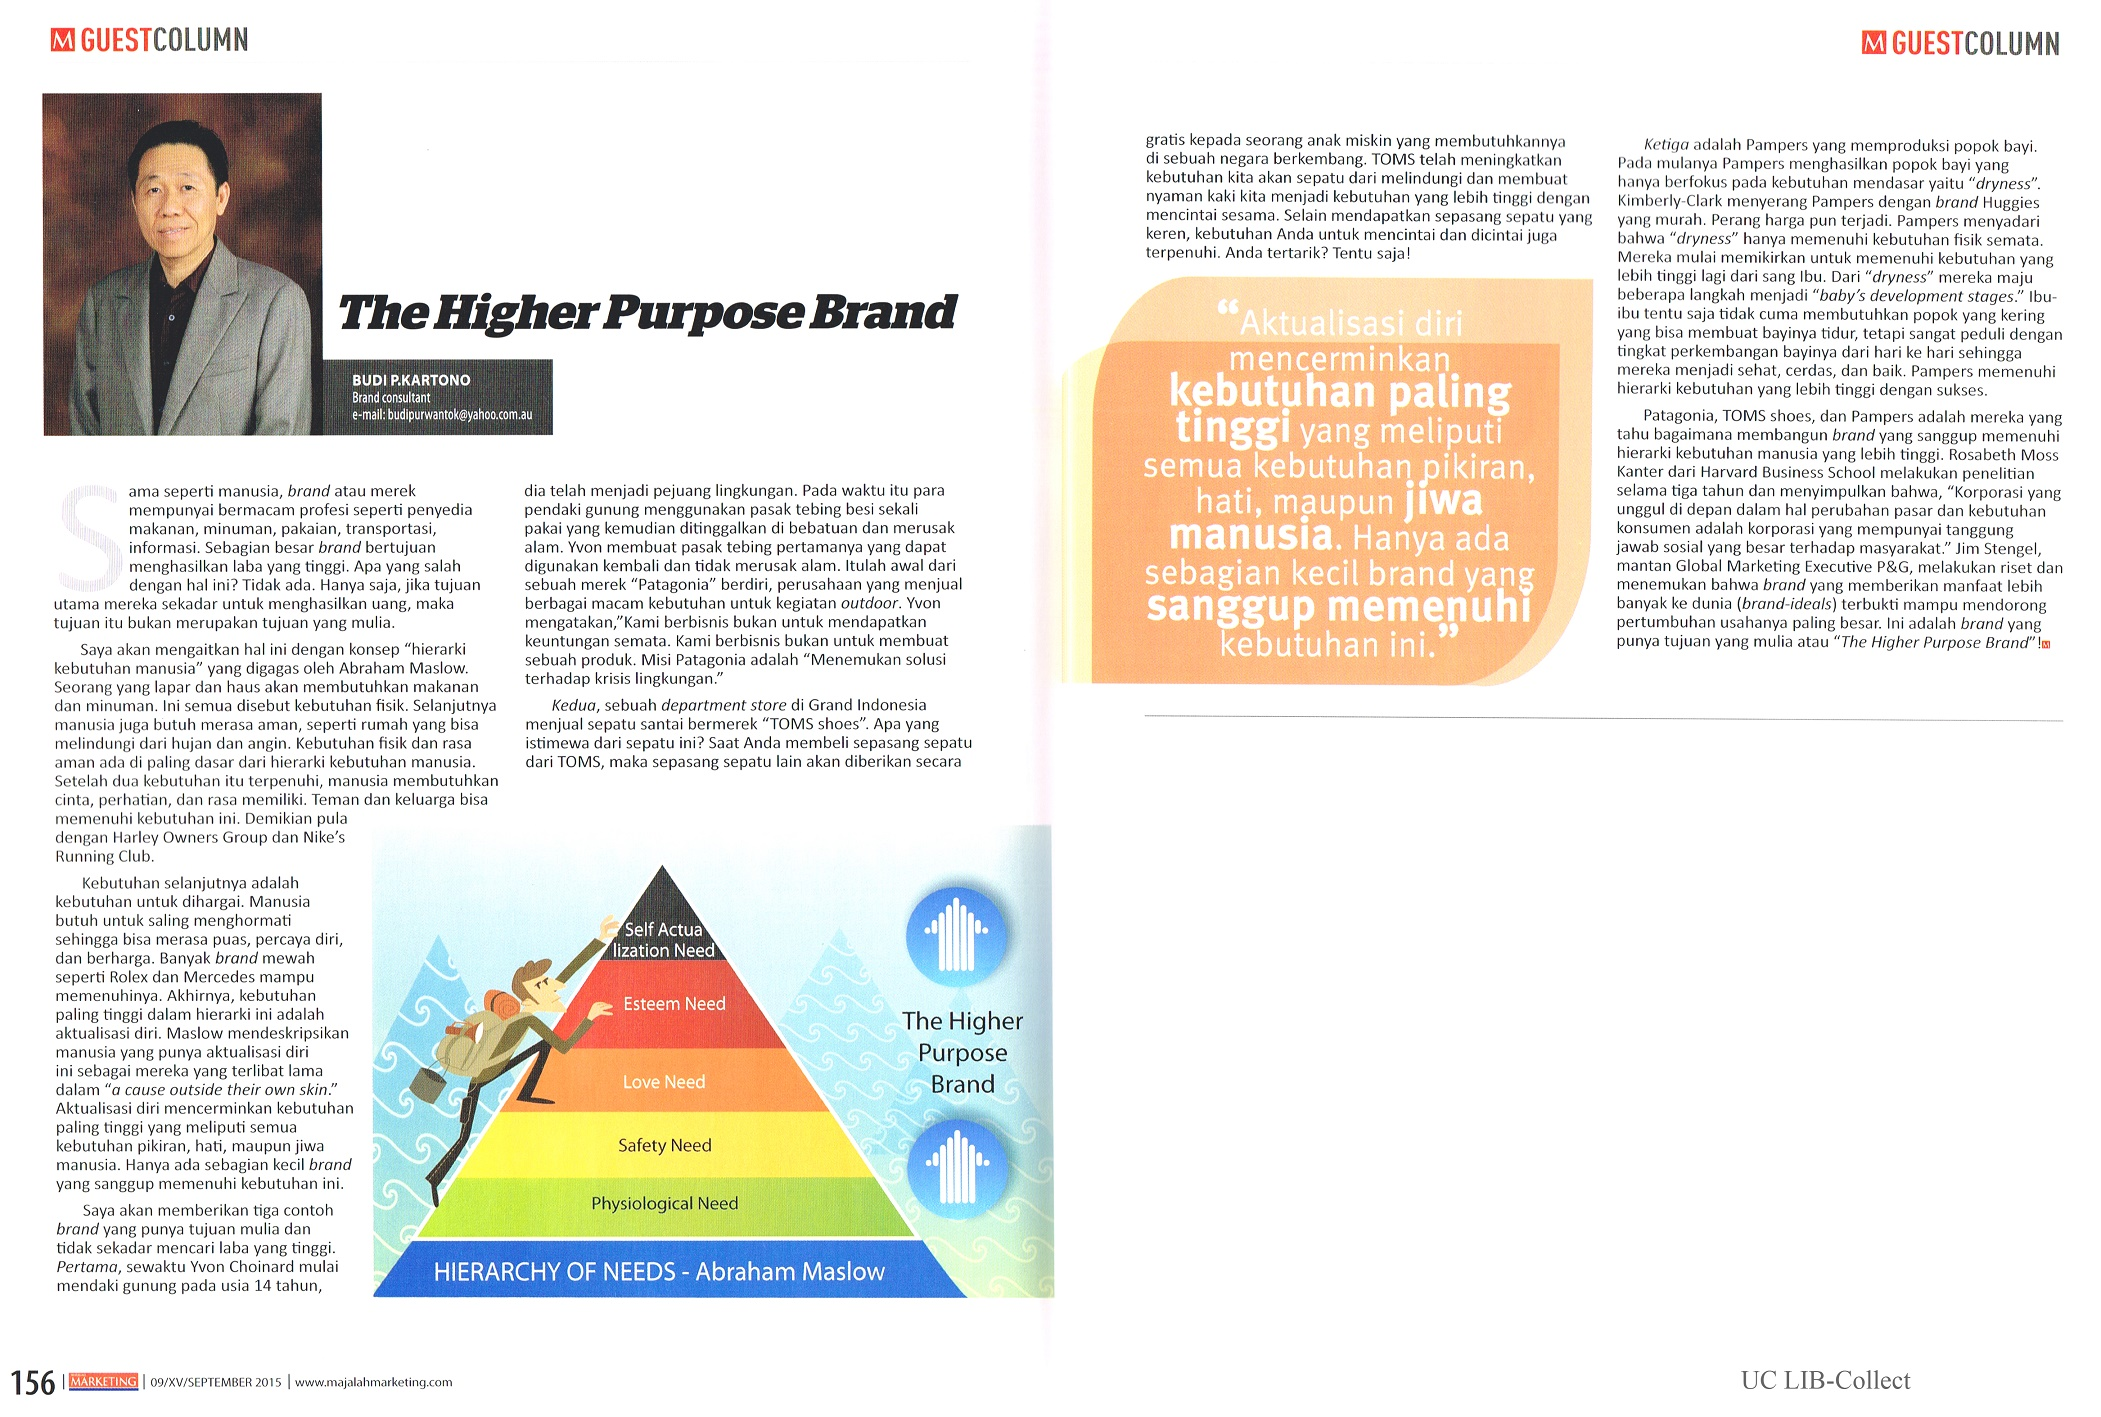 The Higher Purpose Brand. Marketing.Edisi.09.September 2015.Hal.156,157